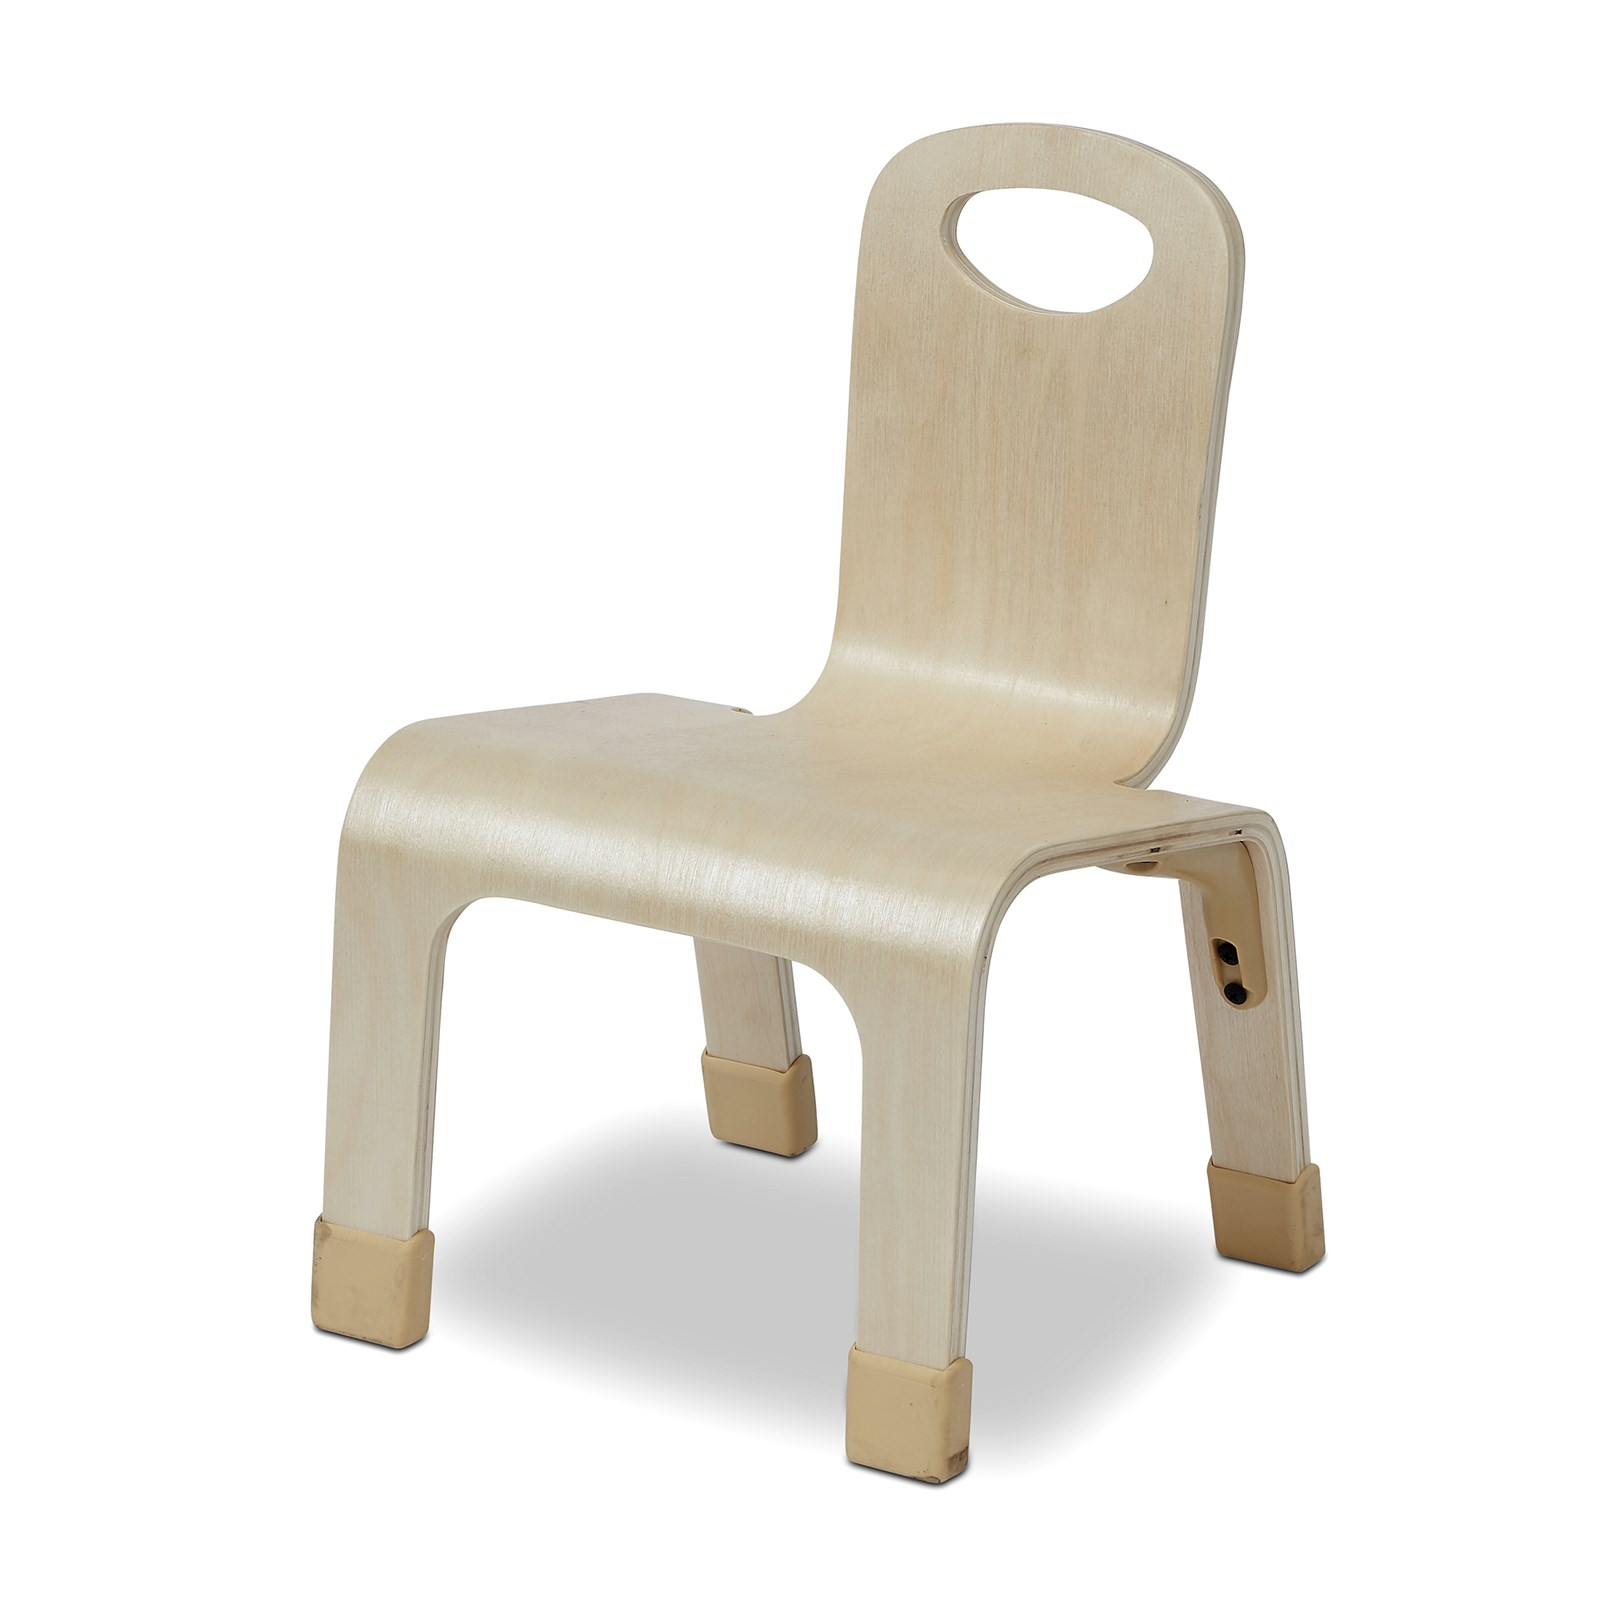 Playscapes One Piece Wooden Chair (pack 4) - 210mm